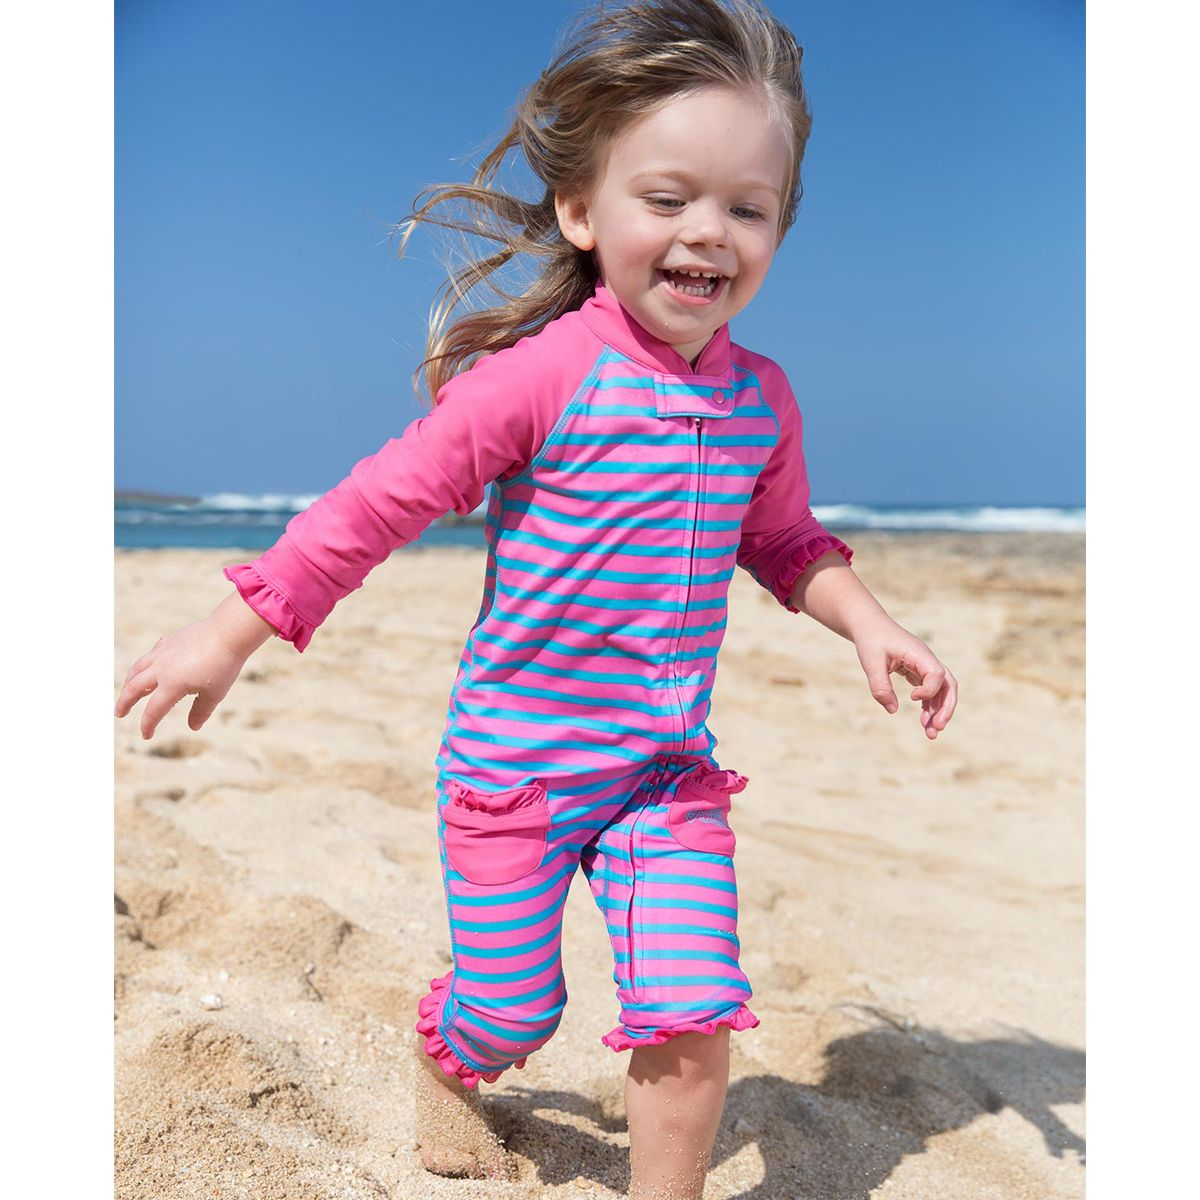 1de1722d7a083 Wrap your baby in comfort and sun protection with our adorable Sun and Swim  Suits! Order your baby girl's swimsuits online at UVSkinz.com today.